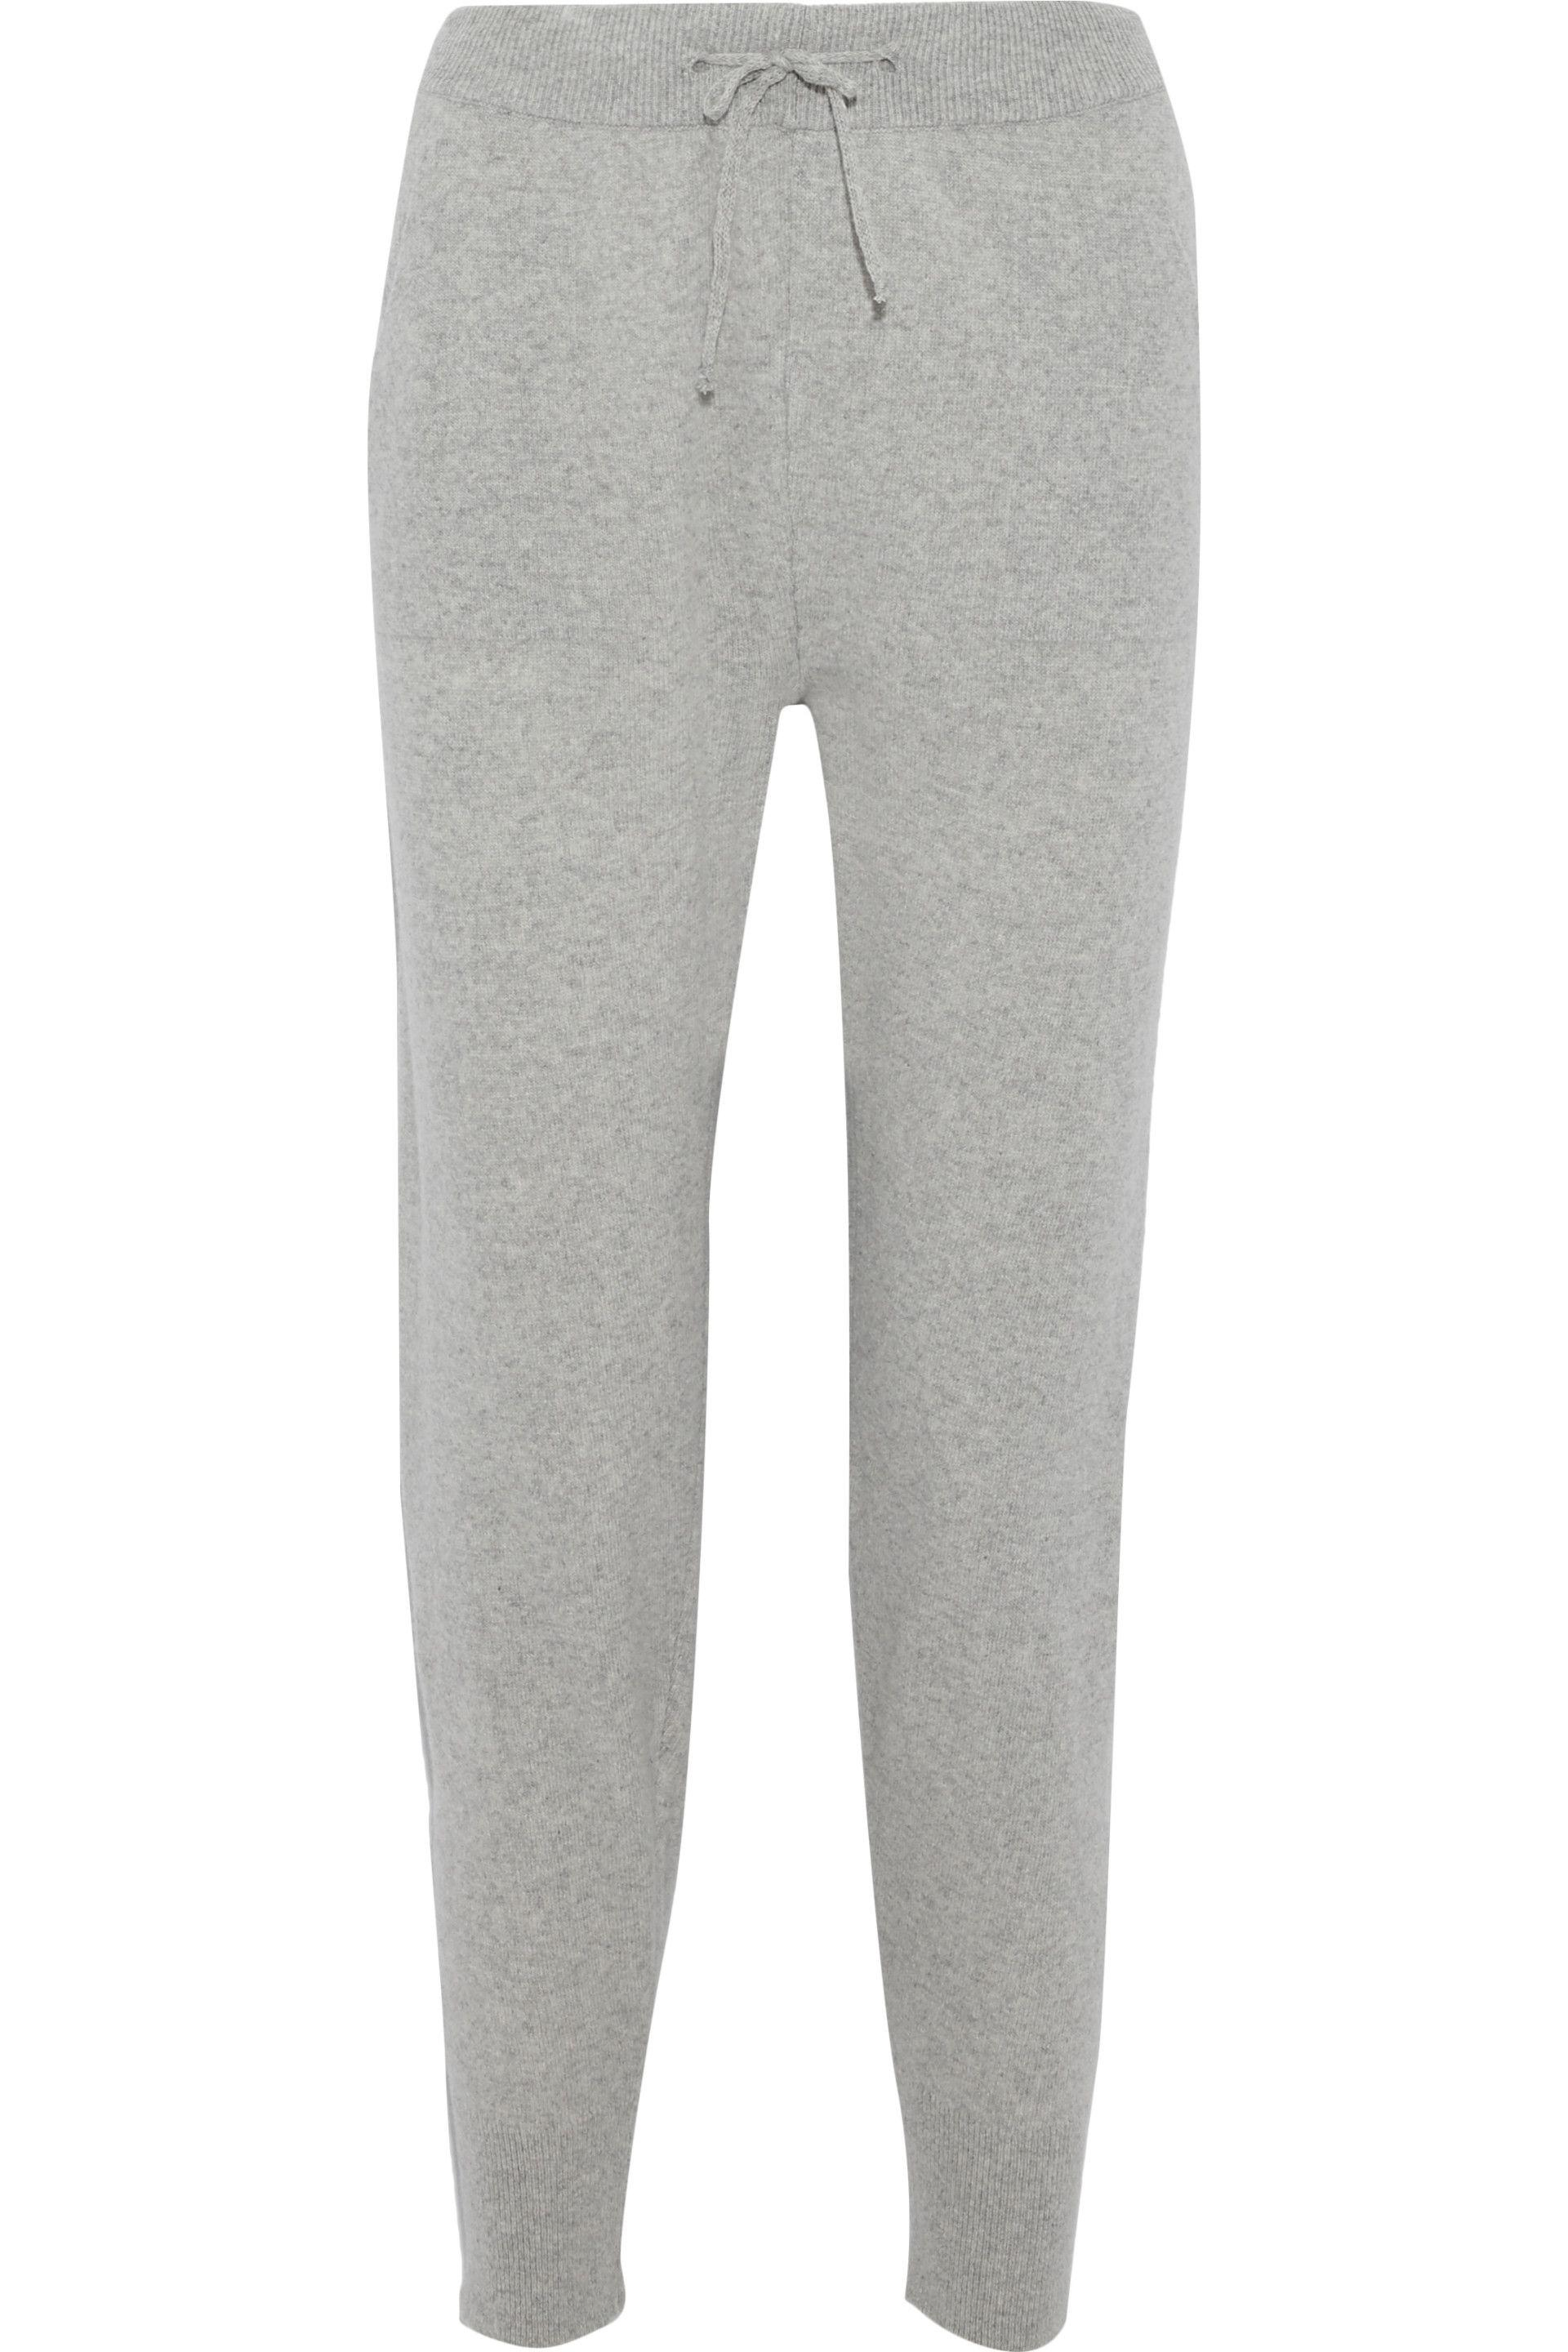 Iris & Ink Woman Cashmere Track Pants Light Gray Size M IRIS & INK Geniue Stockist Free Shipping Purchase Clearance Latest Collections Outlet Order Online wCJ3d